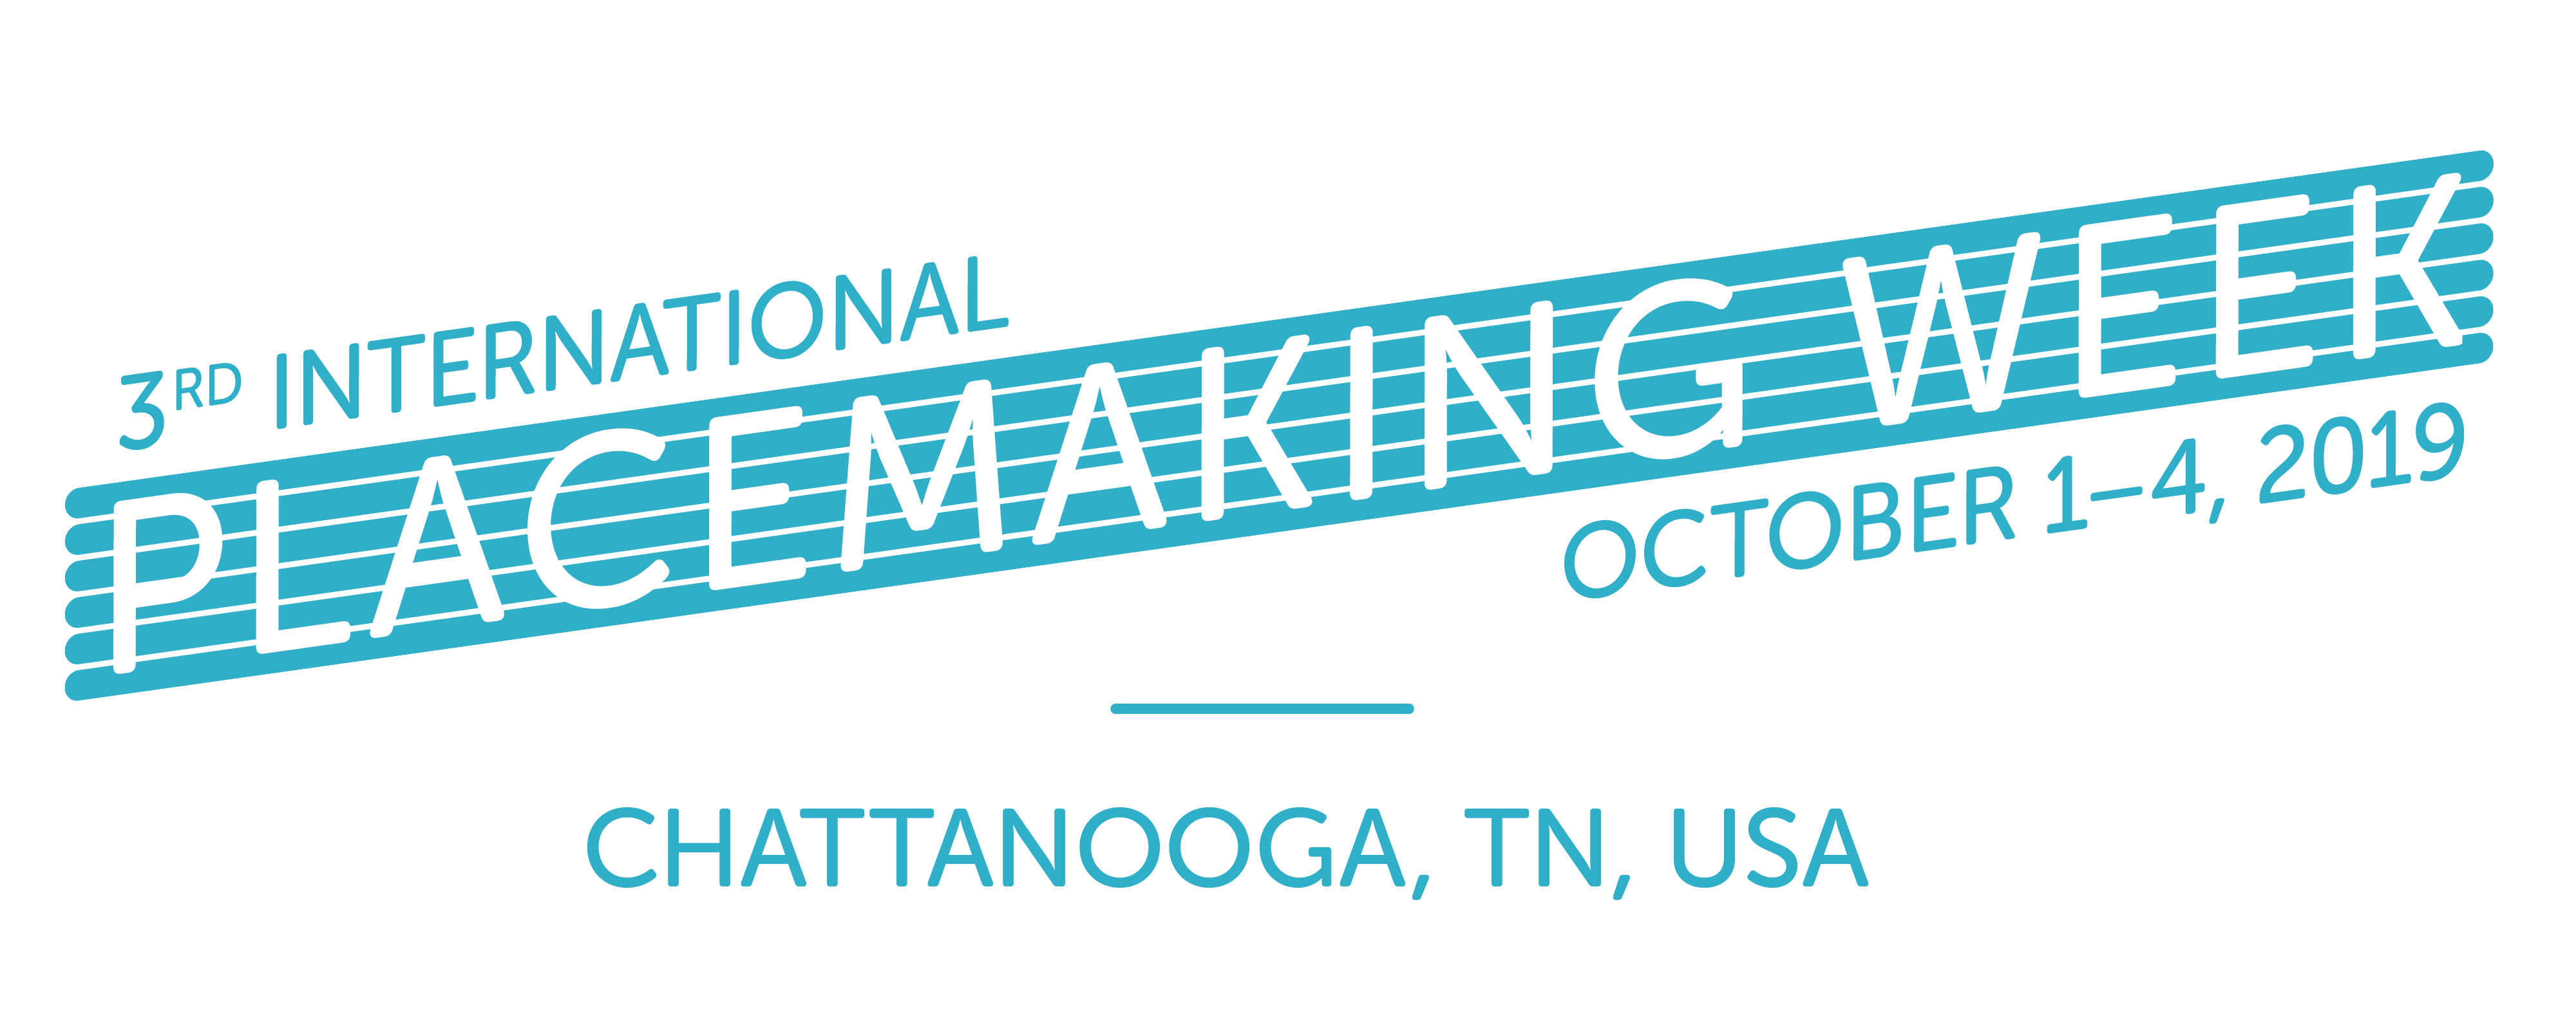 3rd International Placemaking Week